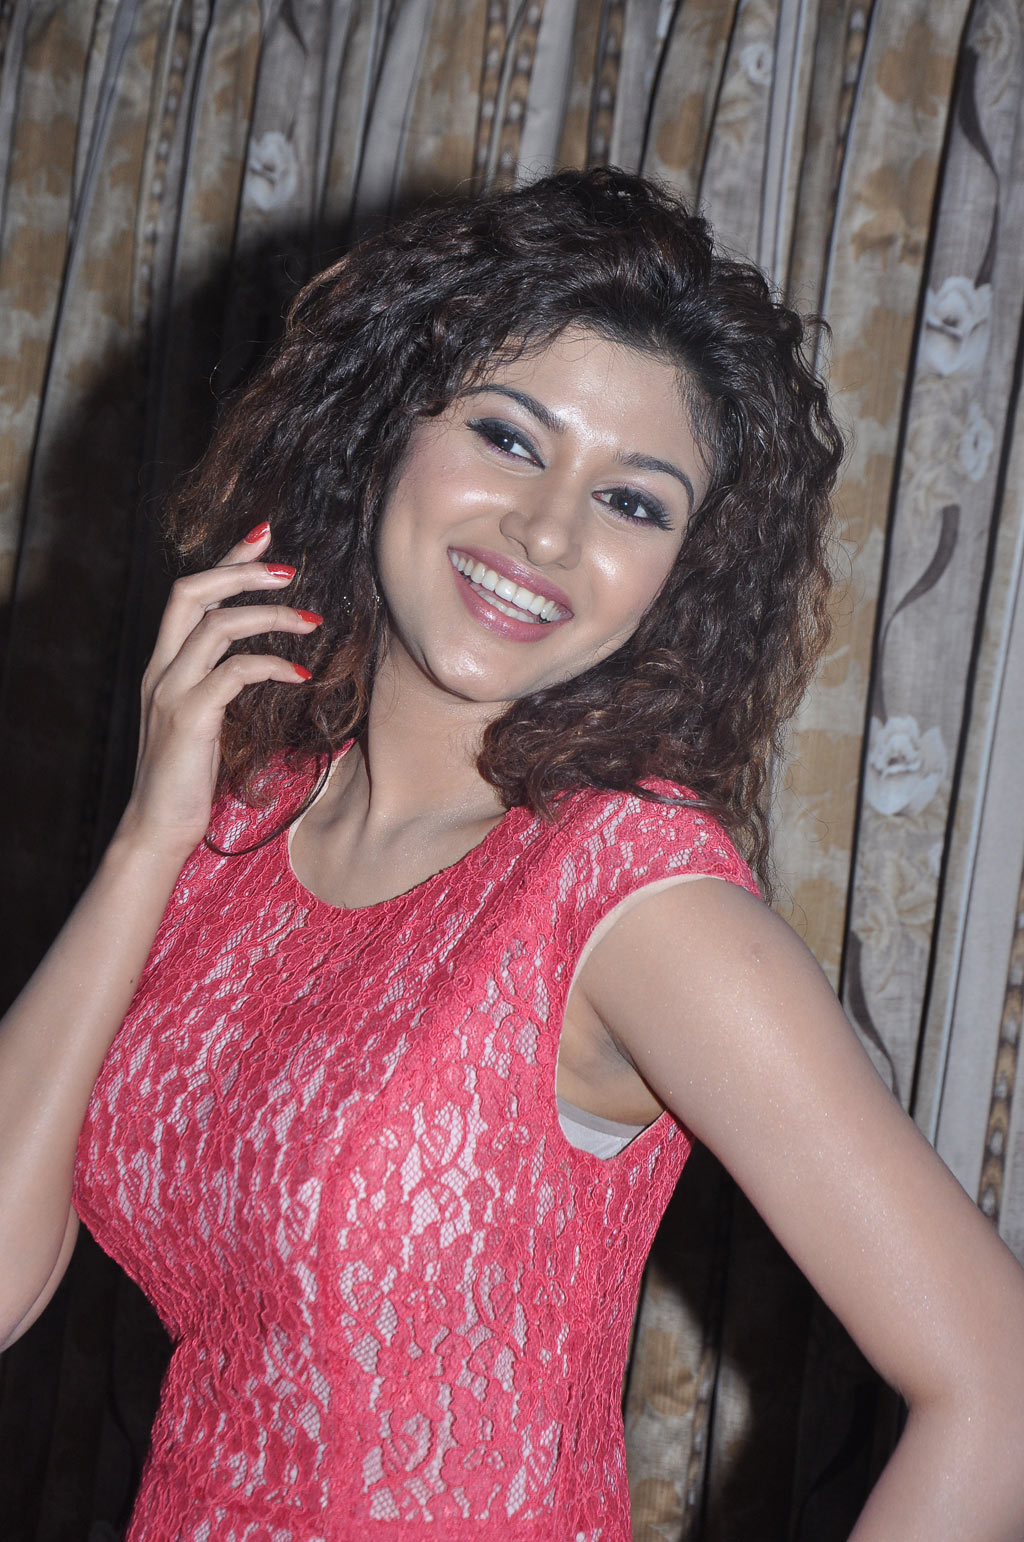 tamil film actress oviya, malayalam film actress helen, actr